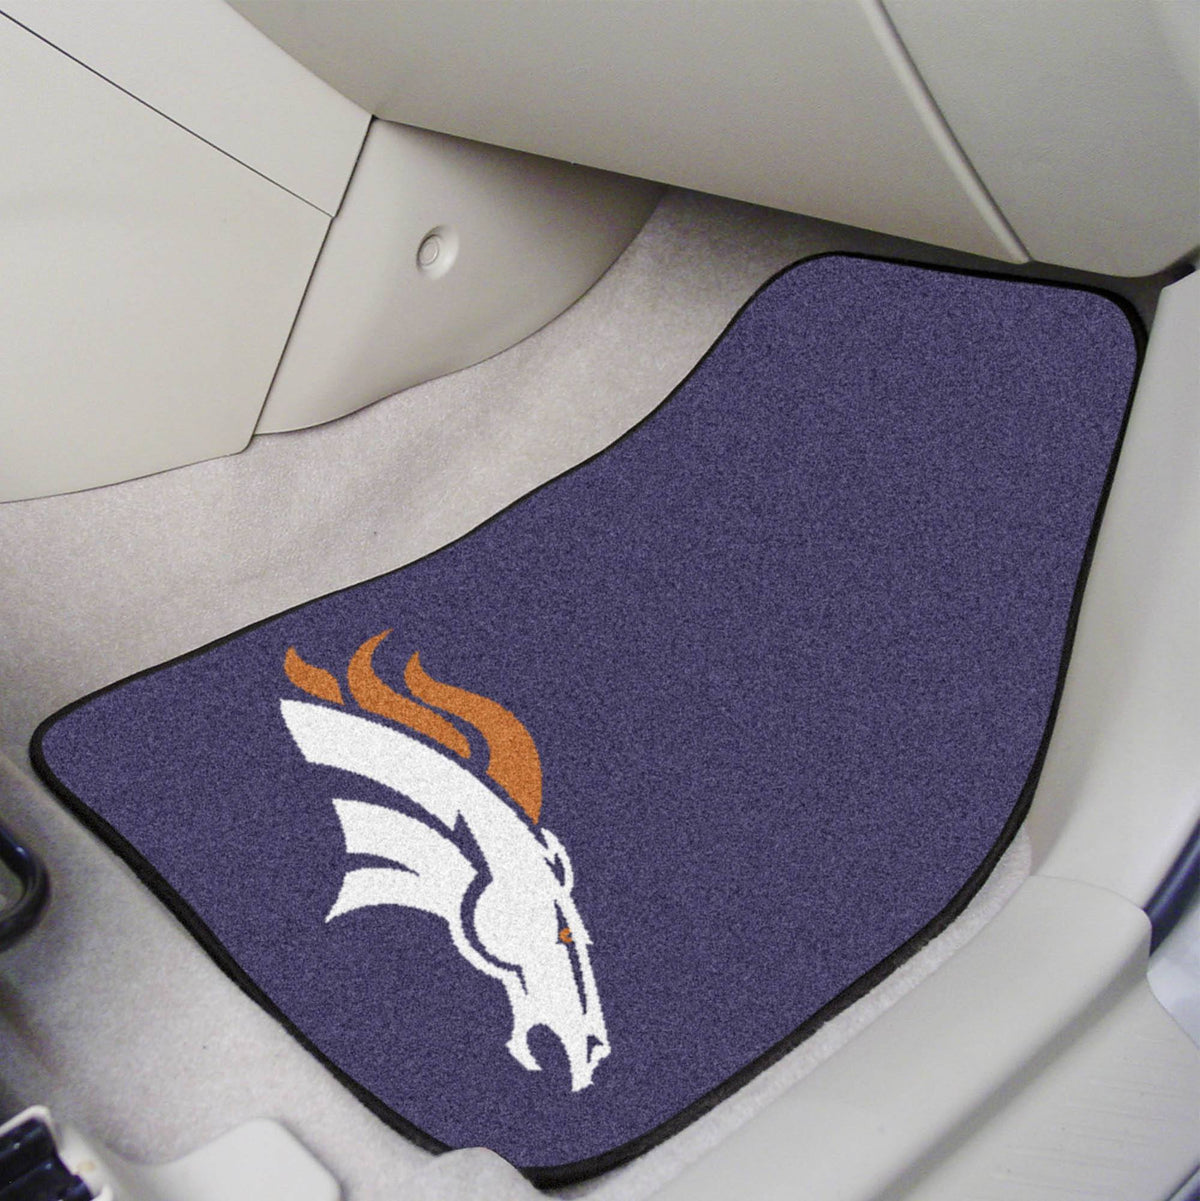 "NFL - 2-pc Carpet Car Mat Set, 17"" x 27"" NFL Mats, Front Car Mats, 2-pc Carpet Car Mat Set, NFL, Auto Fan Mats Denver Broncos"